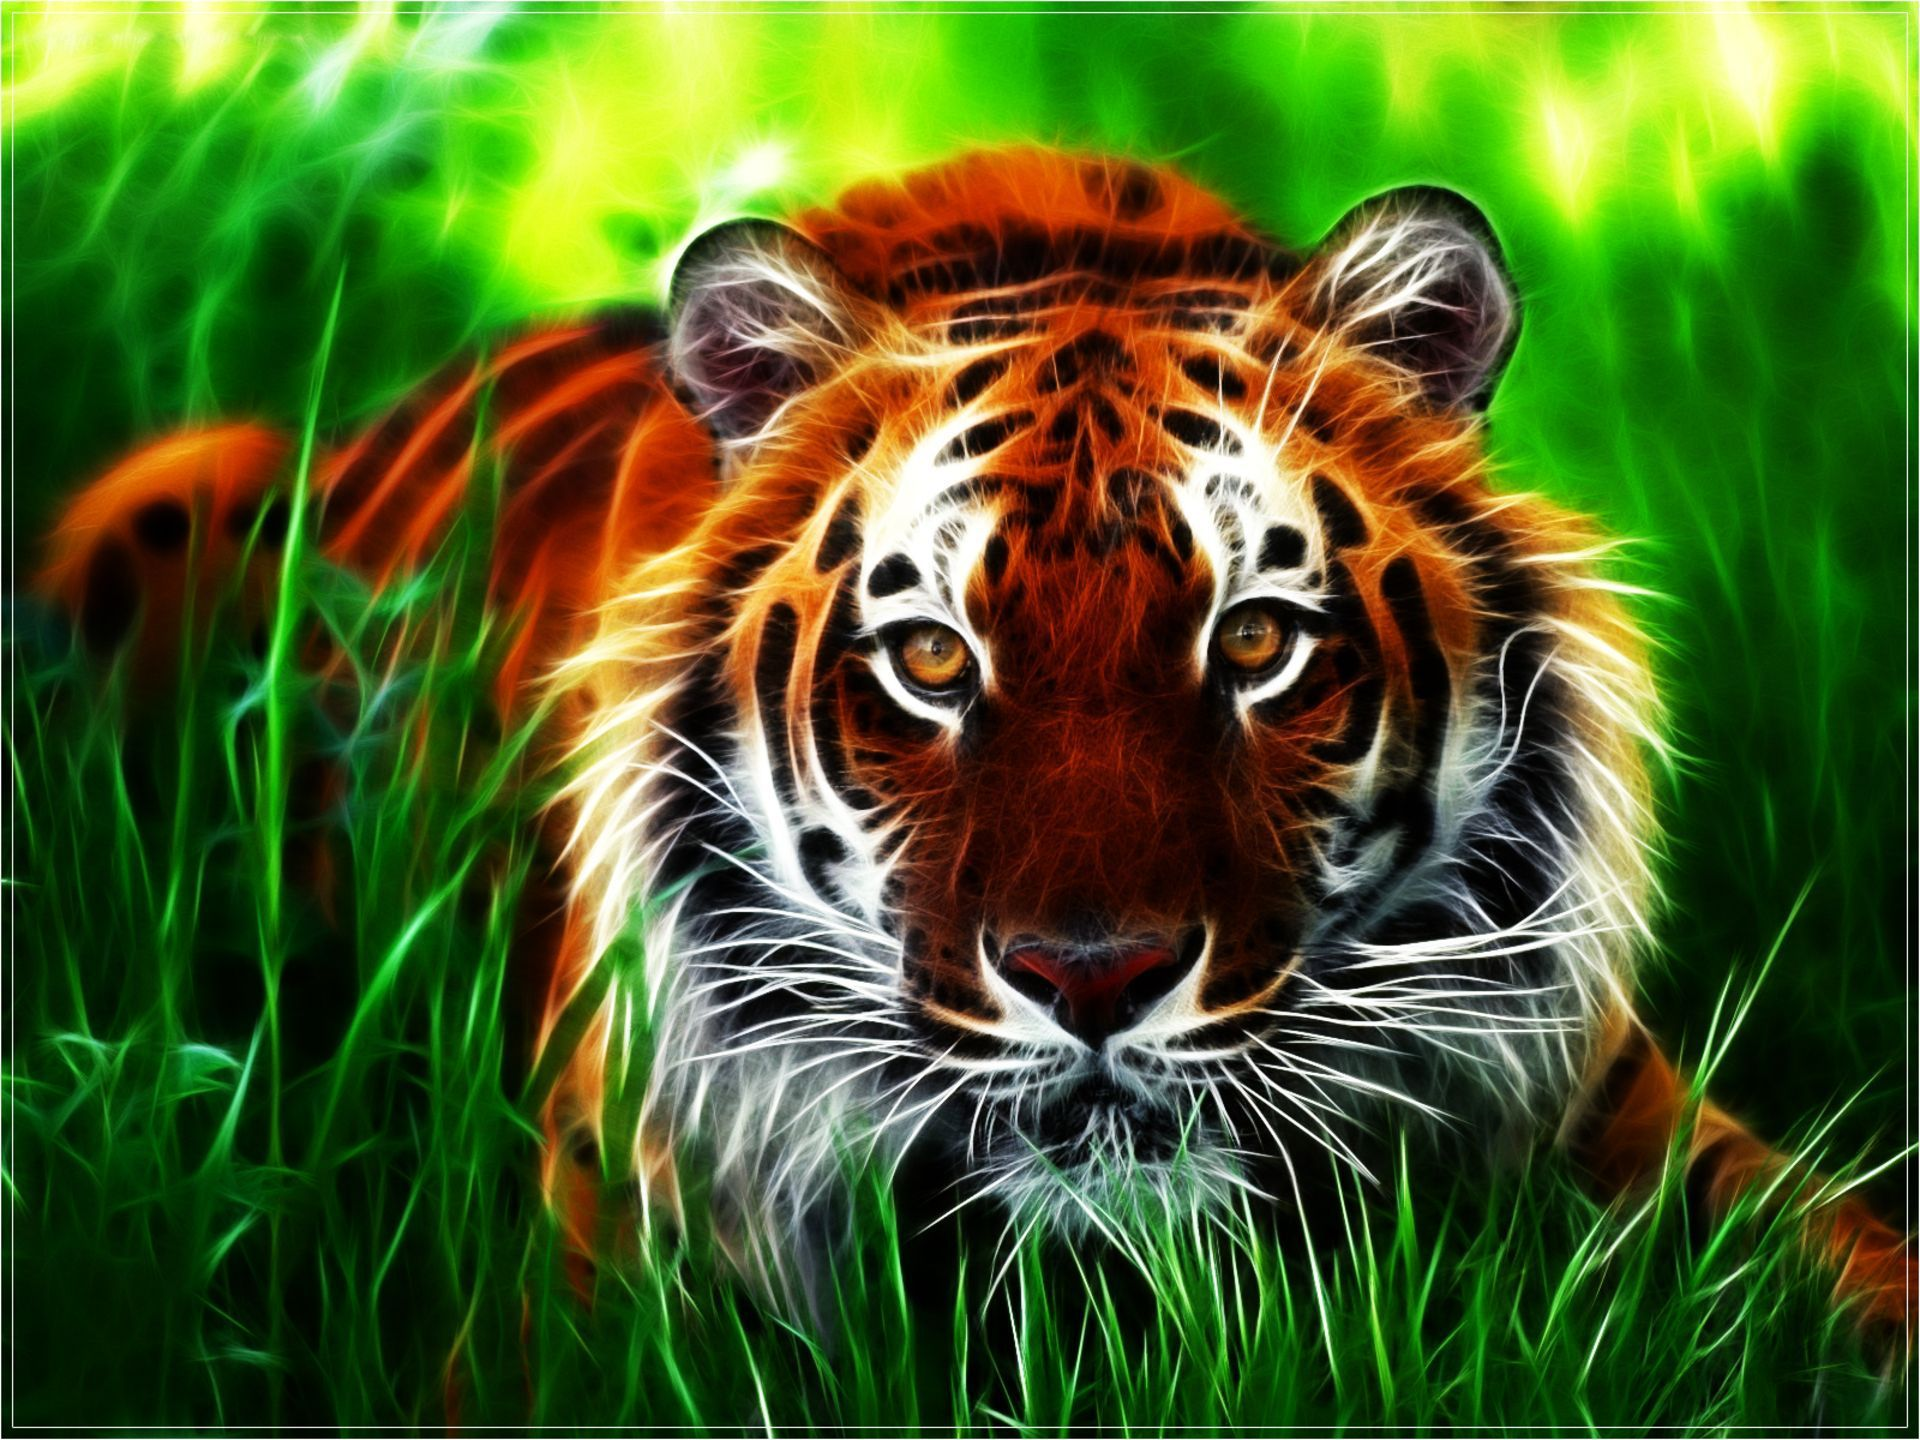 3d Tiger Hd Wallpaper Animated Mobile Wallpapers Hd 3366